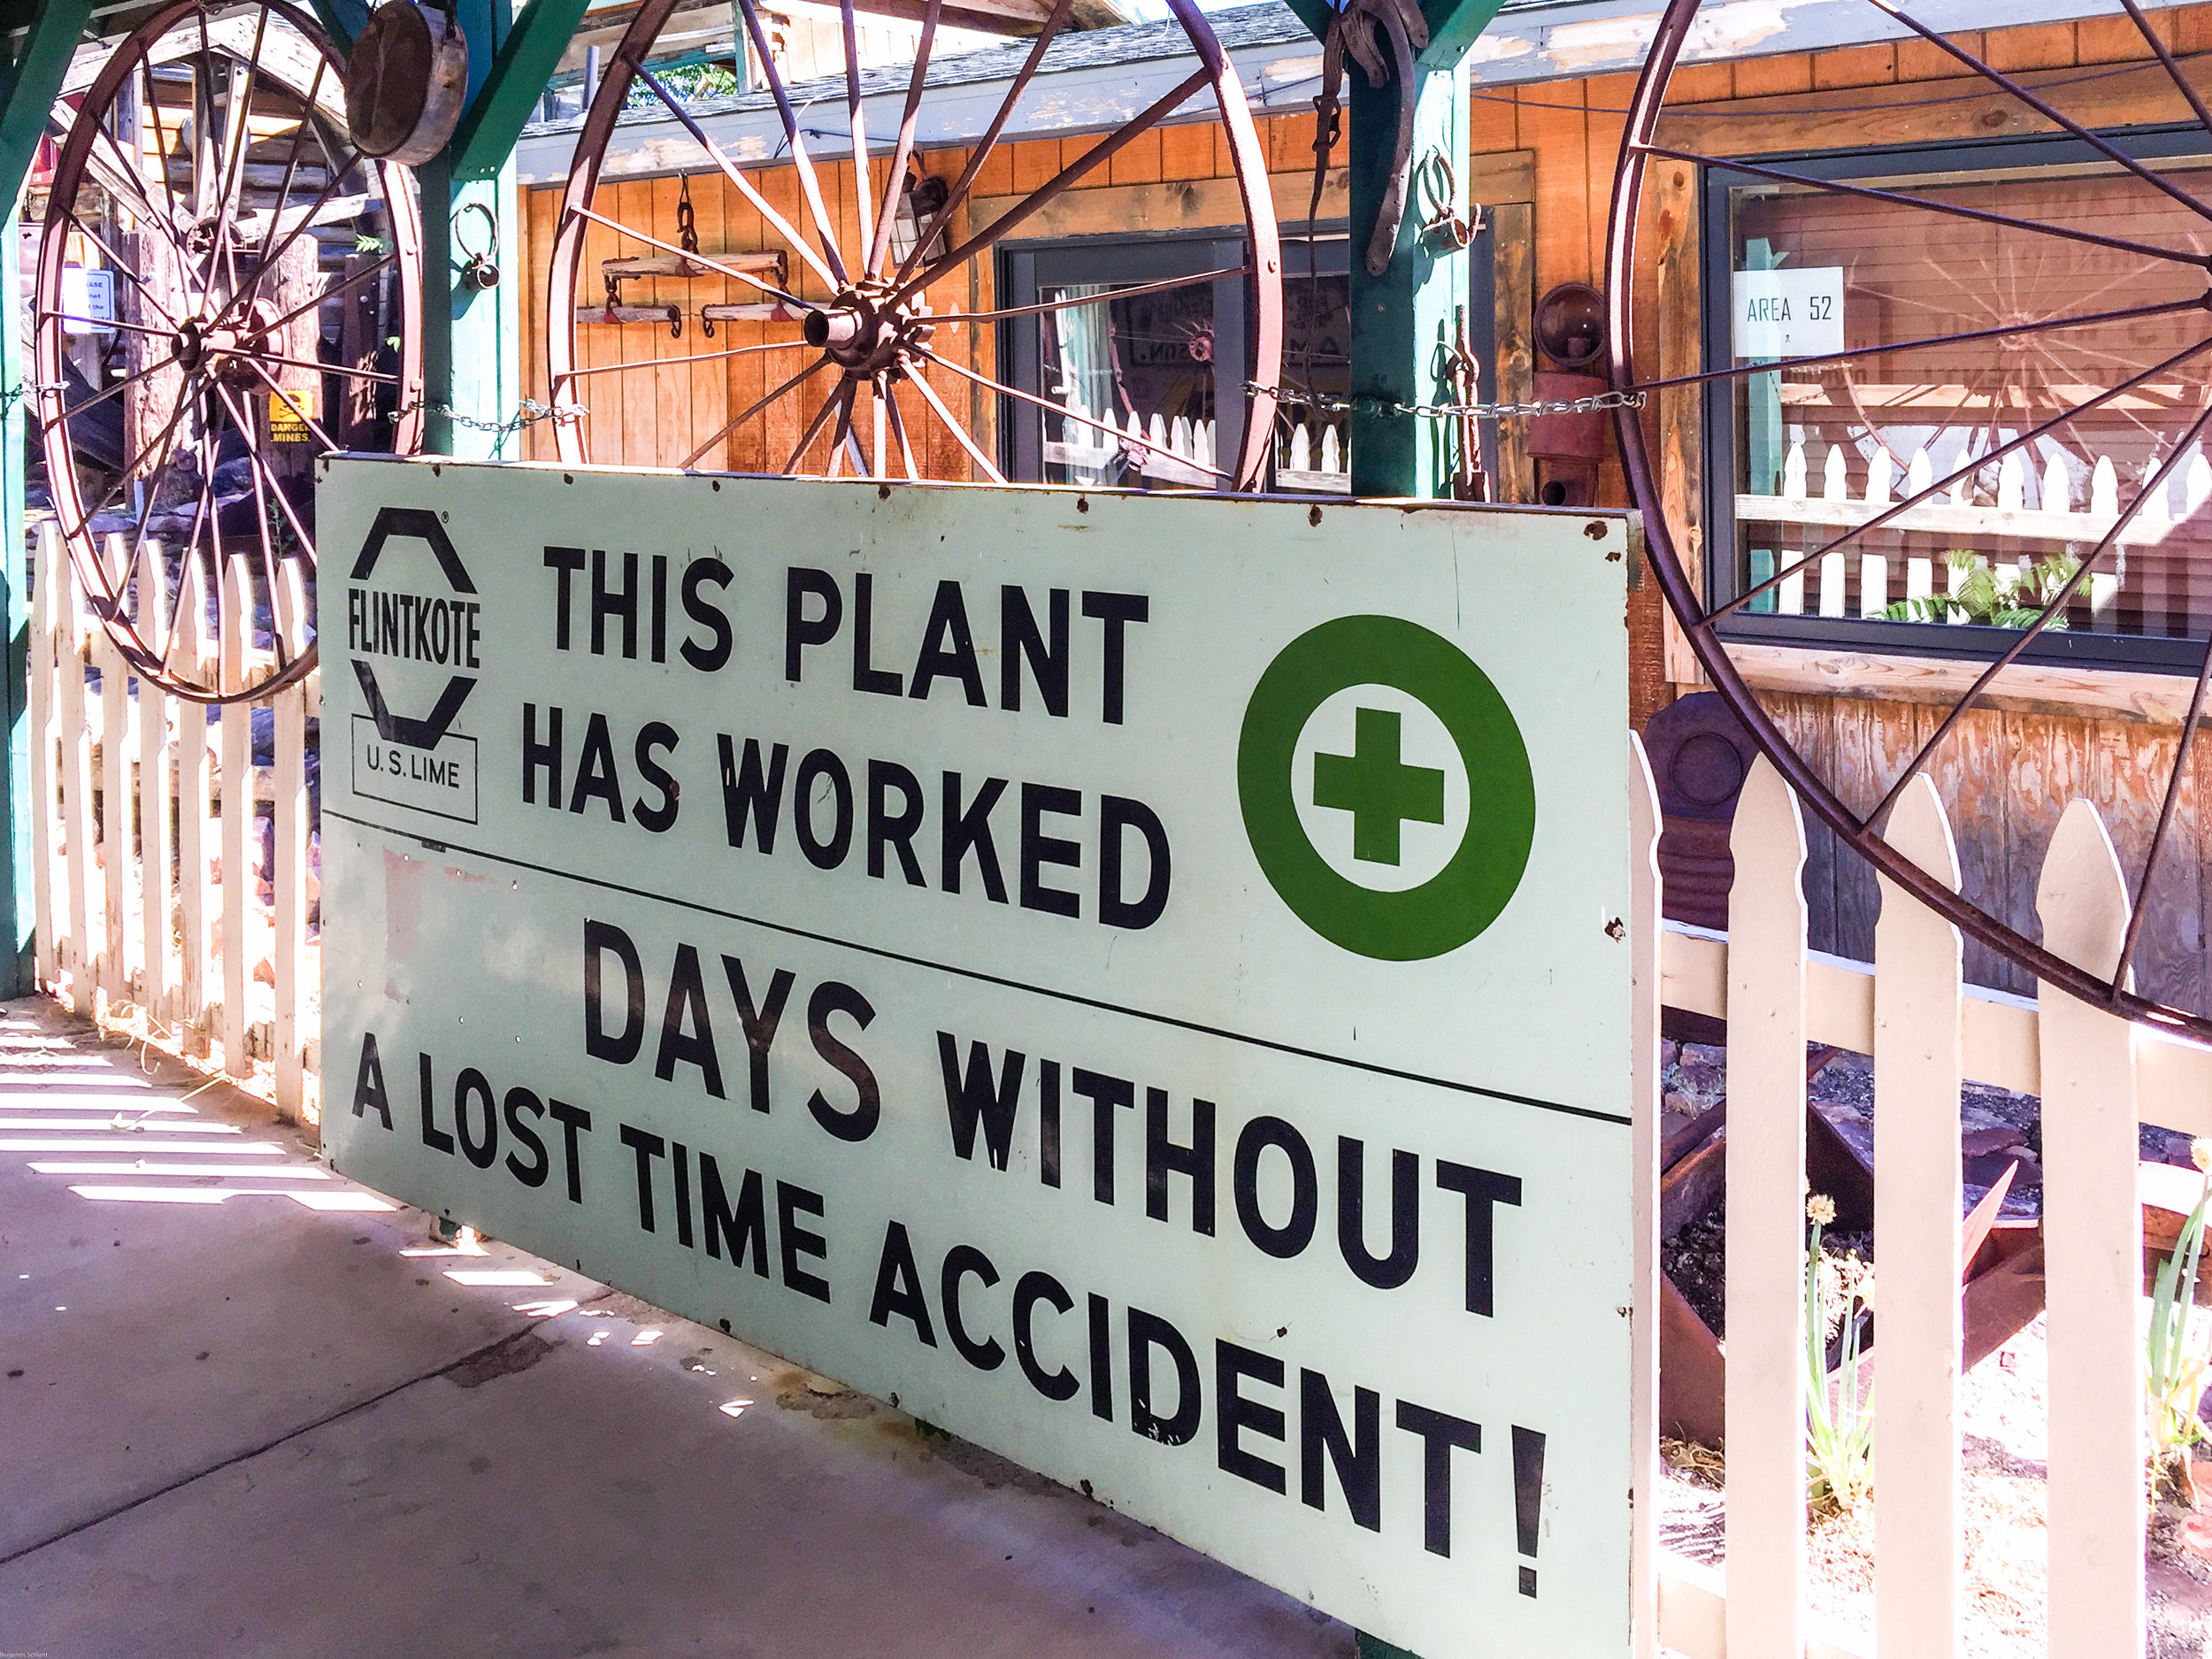 How many days do YOU think there's been without an accident?